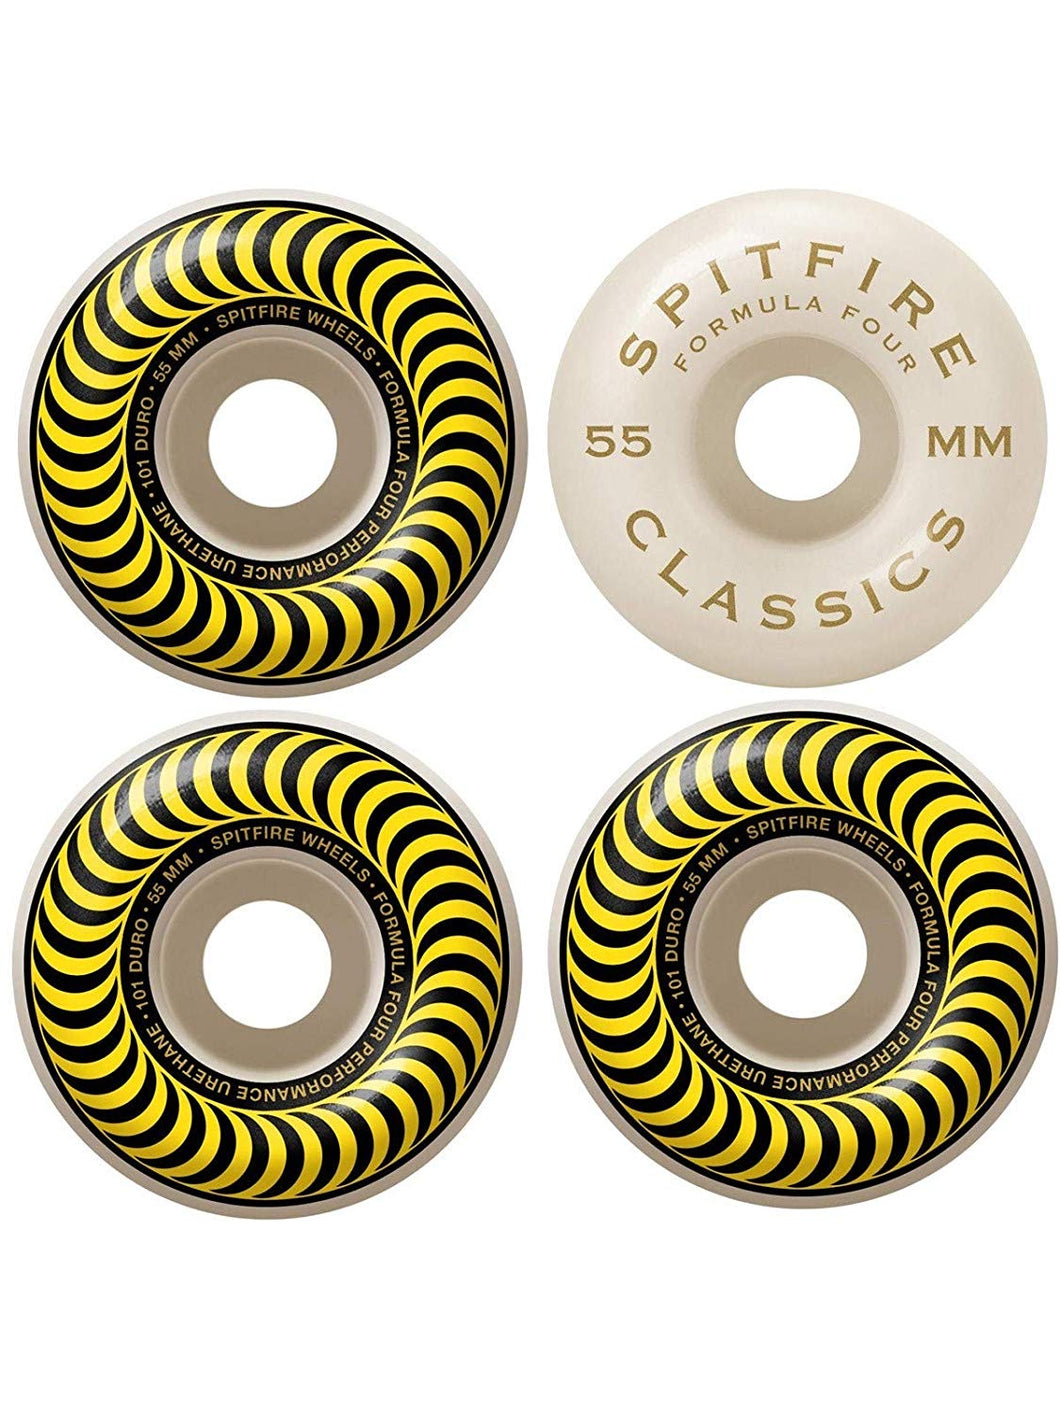 Spitfire Formula Four Classic 99 Wheels - 55mm